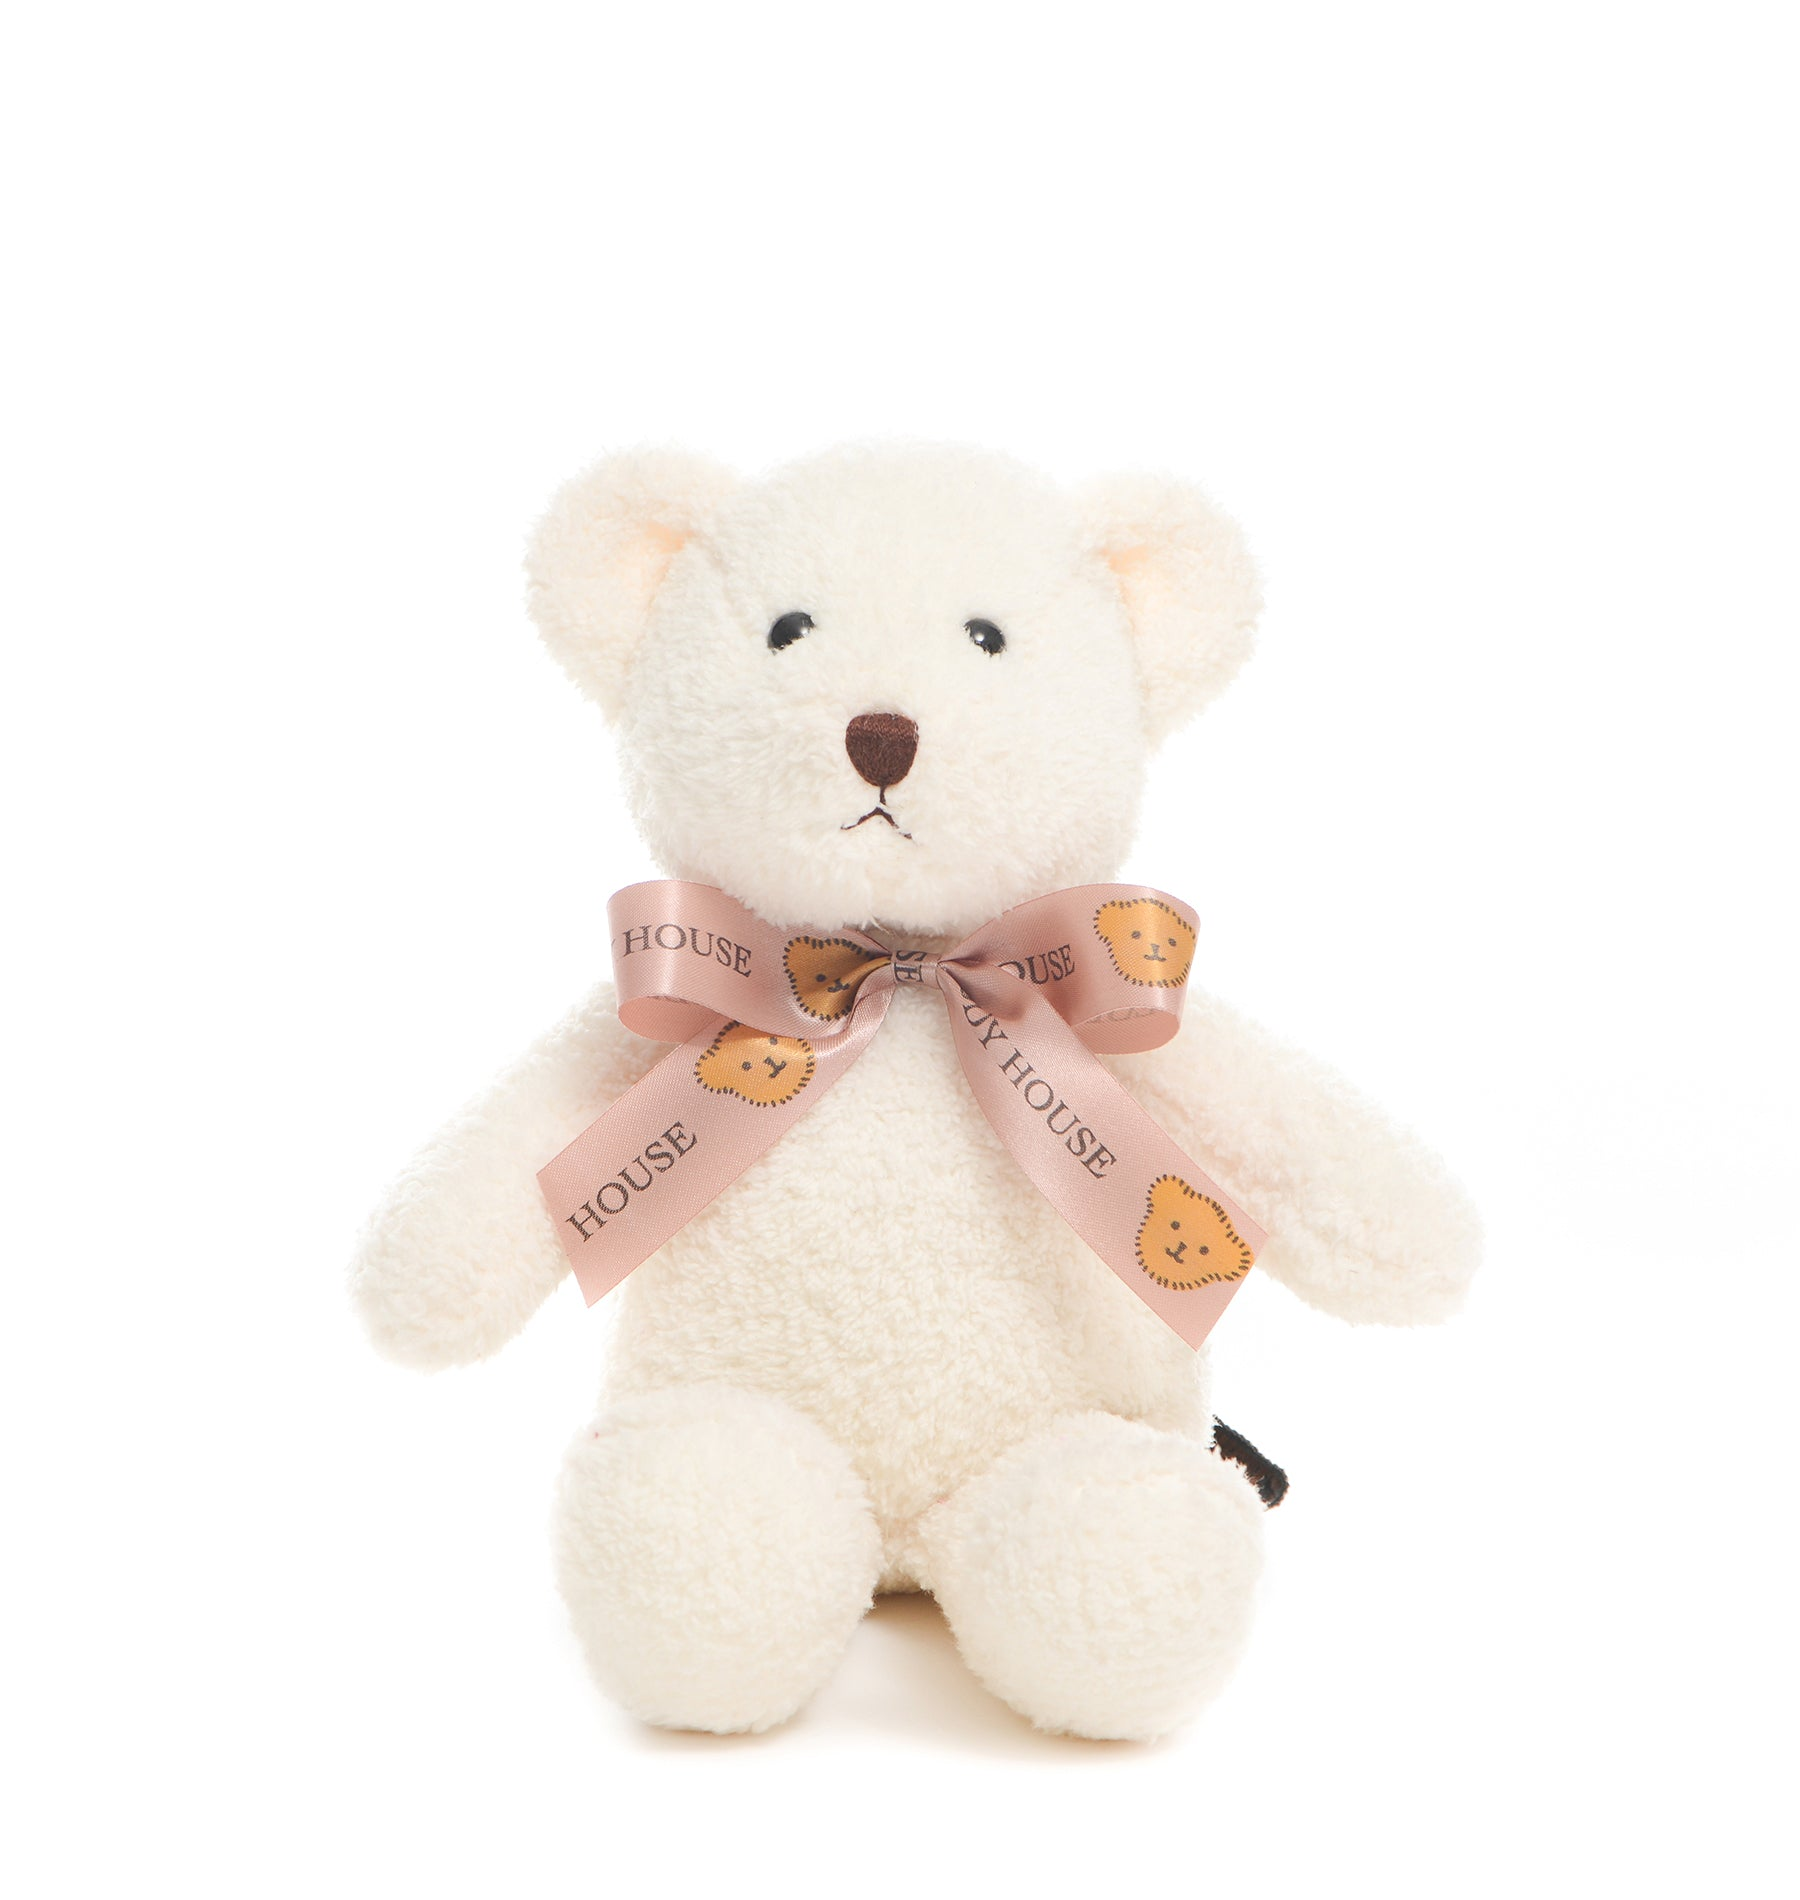 TEDDY HOUSE BONEKA TEDDY BEAR PP BEAR 10 INCH